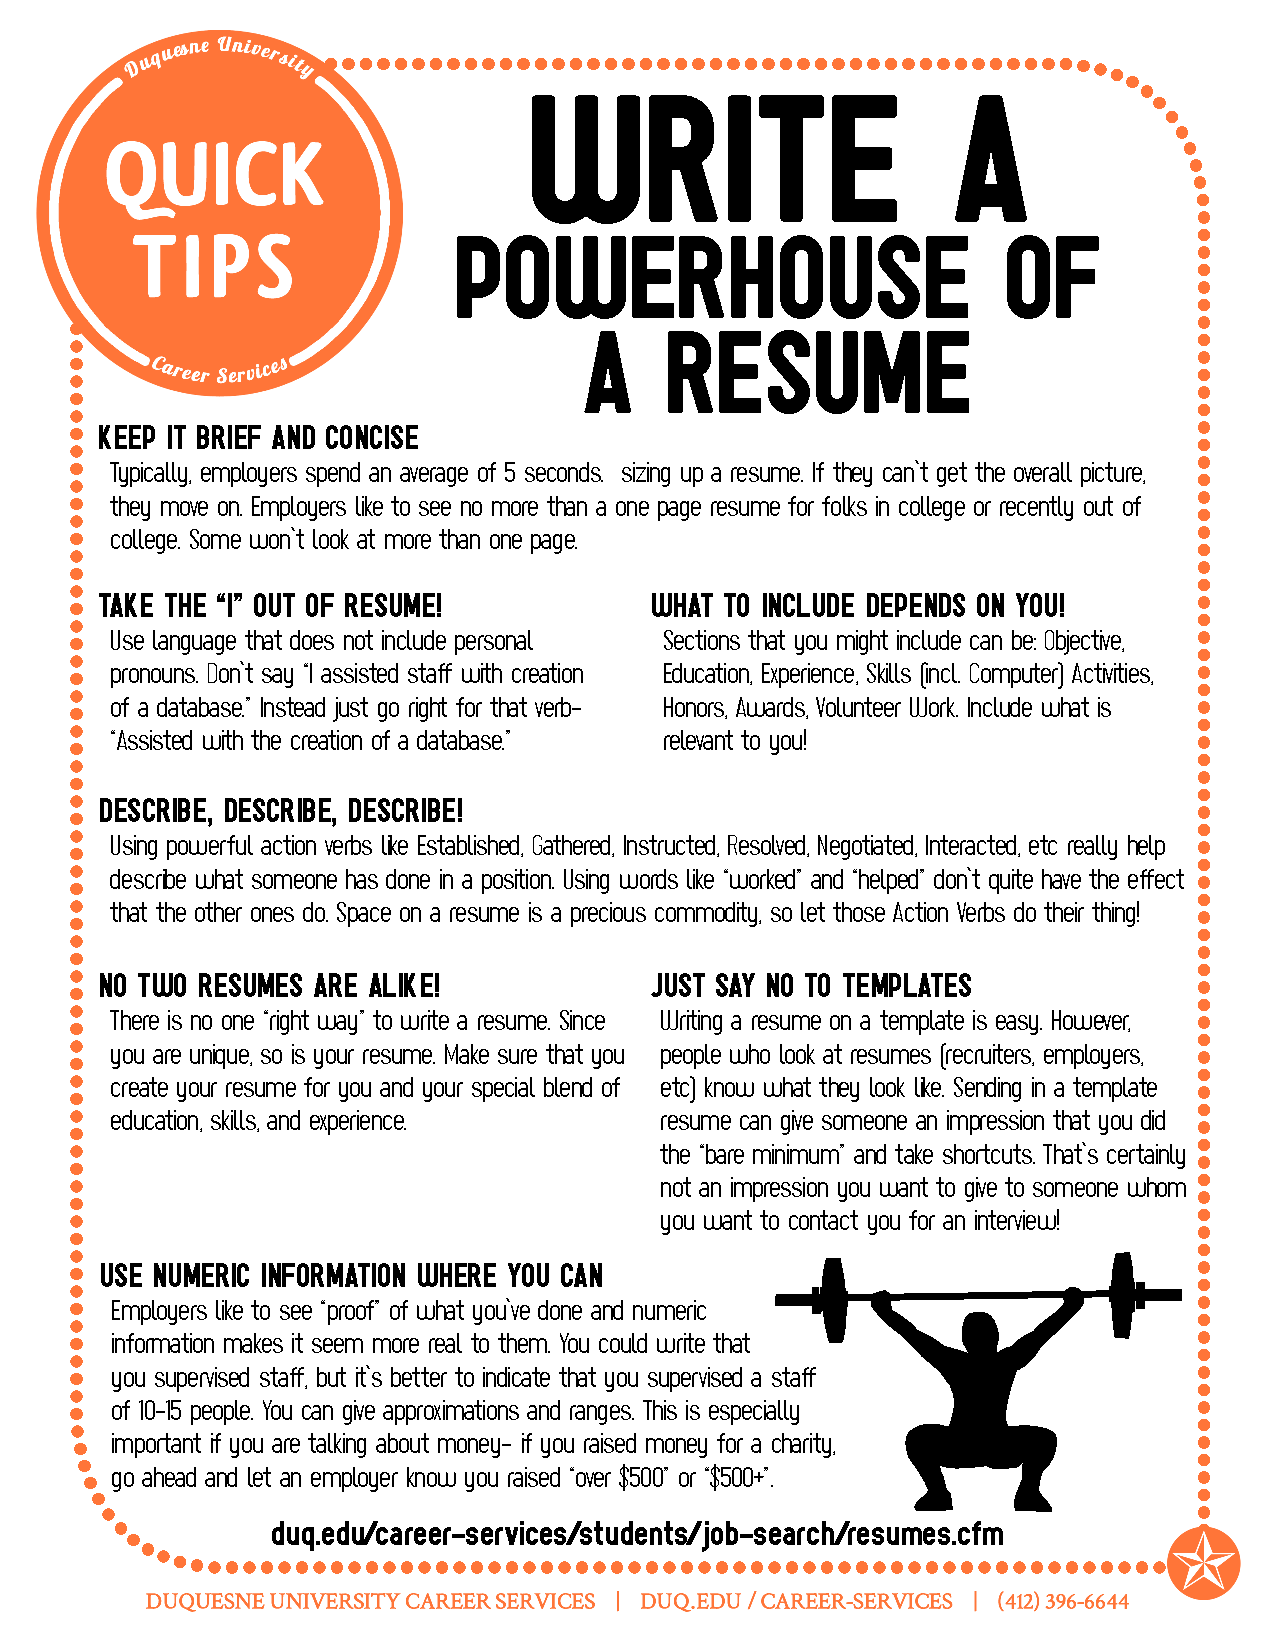 What Do Resumes Look Like Powerful Resume Tipseasy Fixes To Improve And Update Your Resume